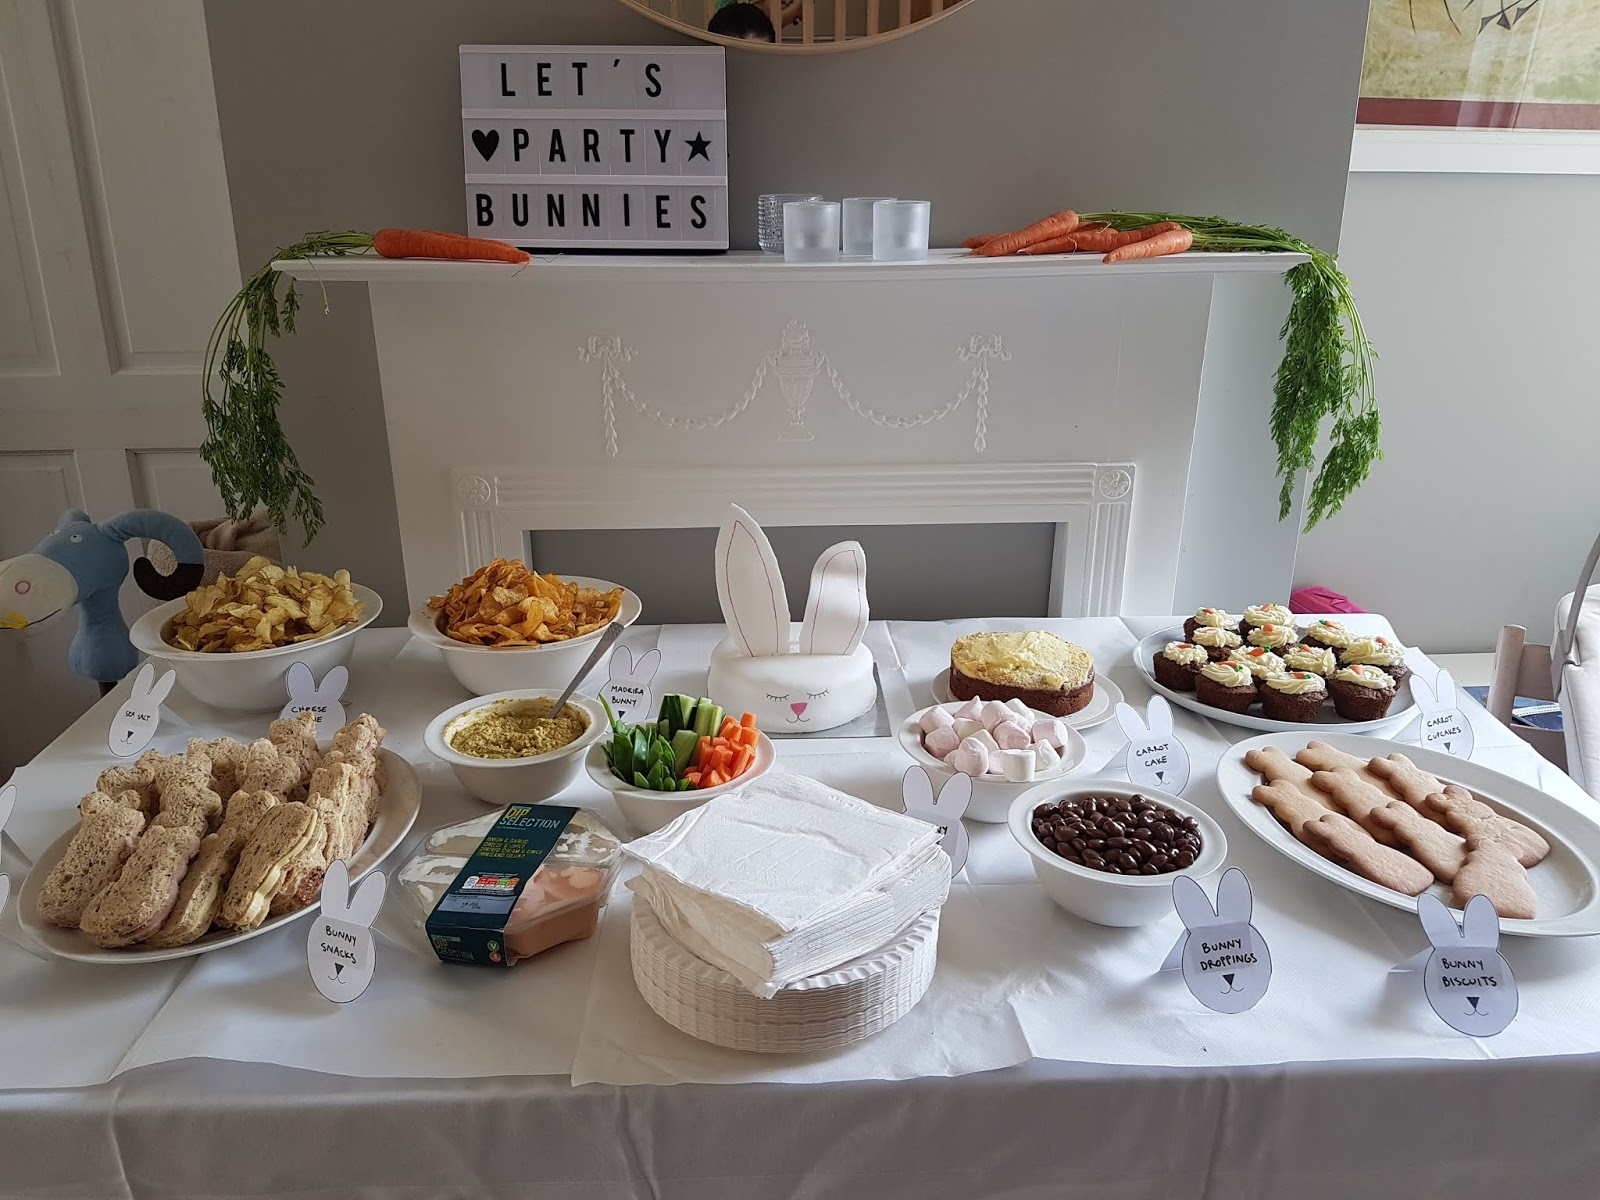 bunny birthday party food table